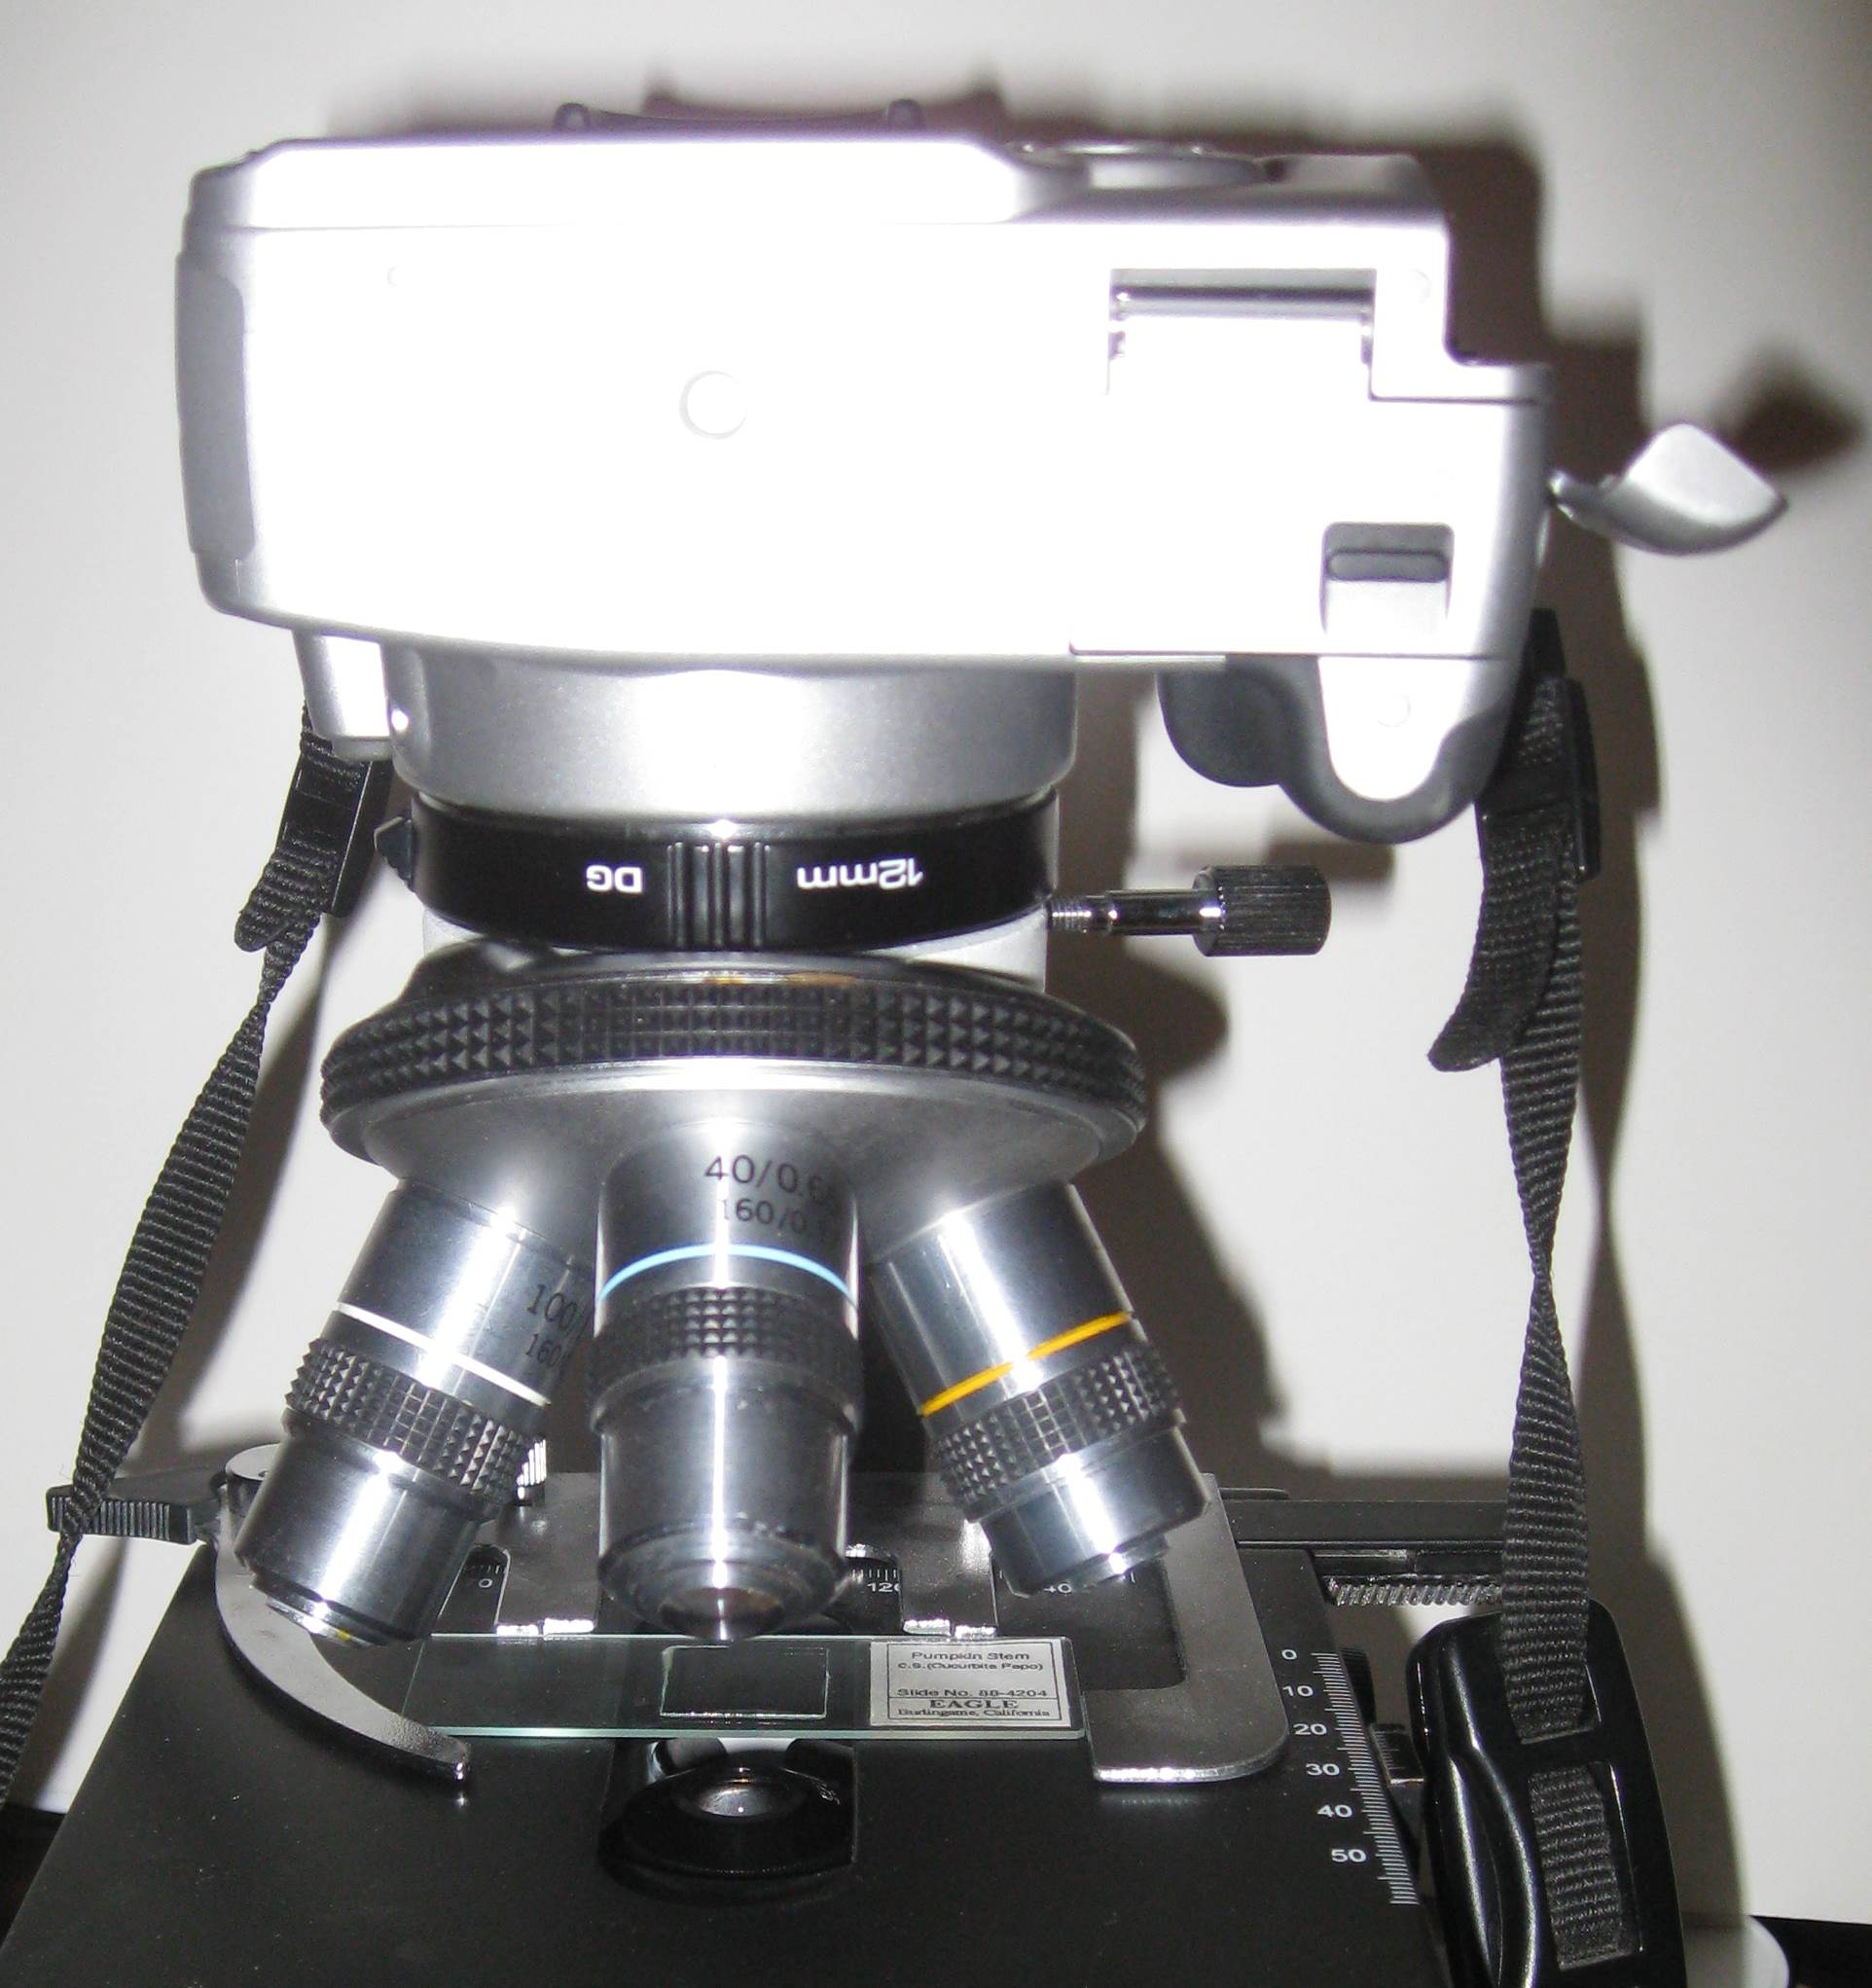 Canon with one extension tube on top of microscope